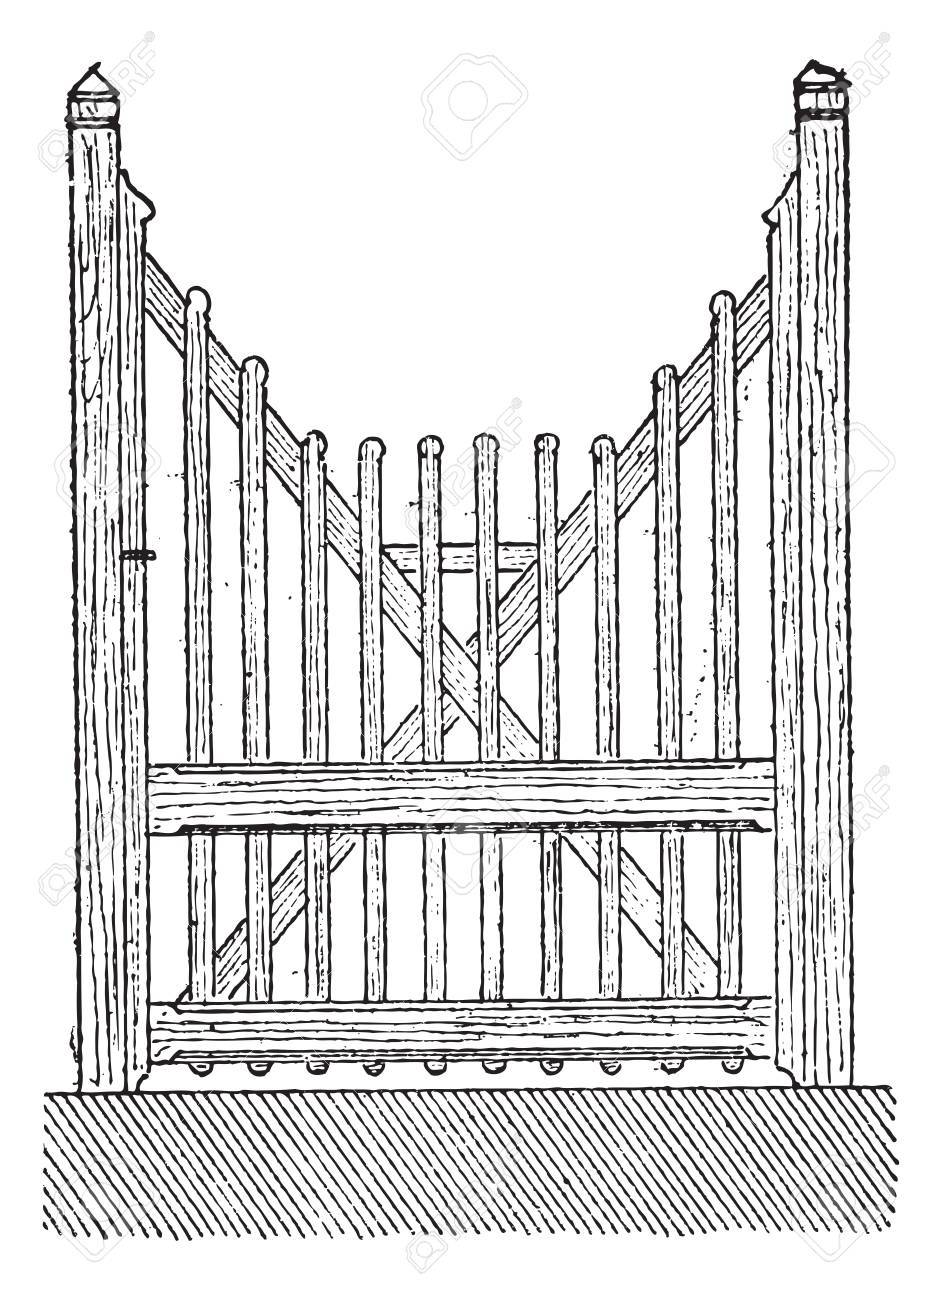 Old engraved illustration of the openwork barrier door isolated on a white background. Dictionary of  sc 1 st  123RF.com & Old Engraved Illustration Of The Openwork Barrier Door Isolated ...